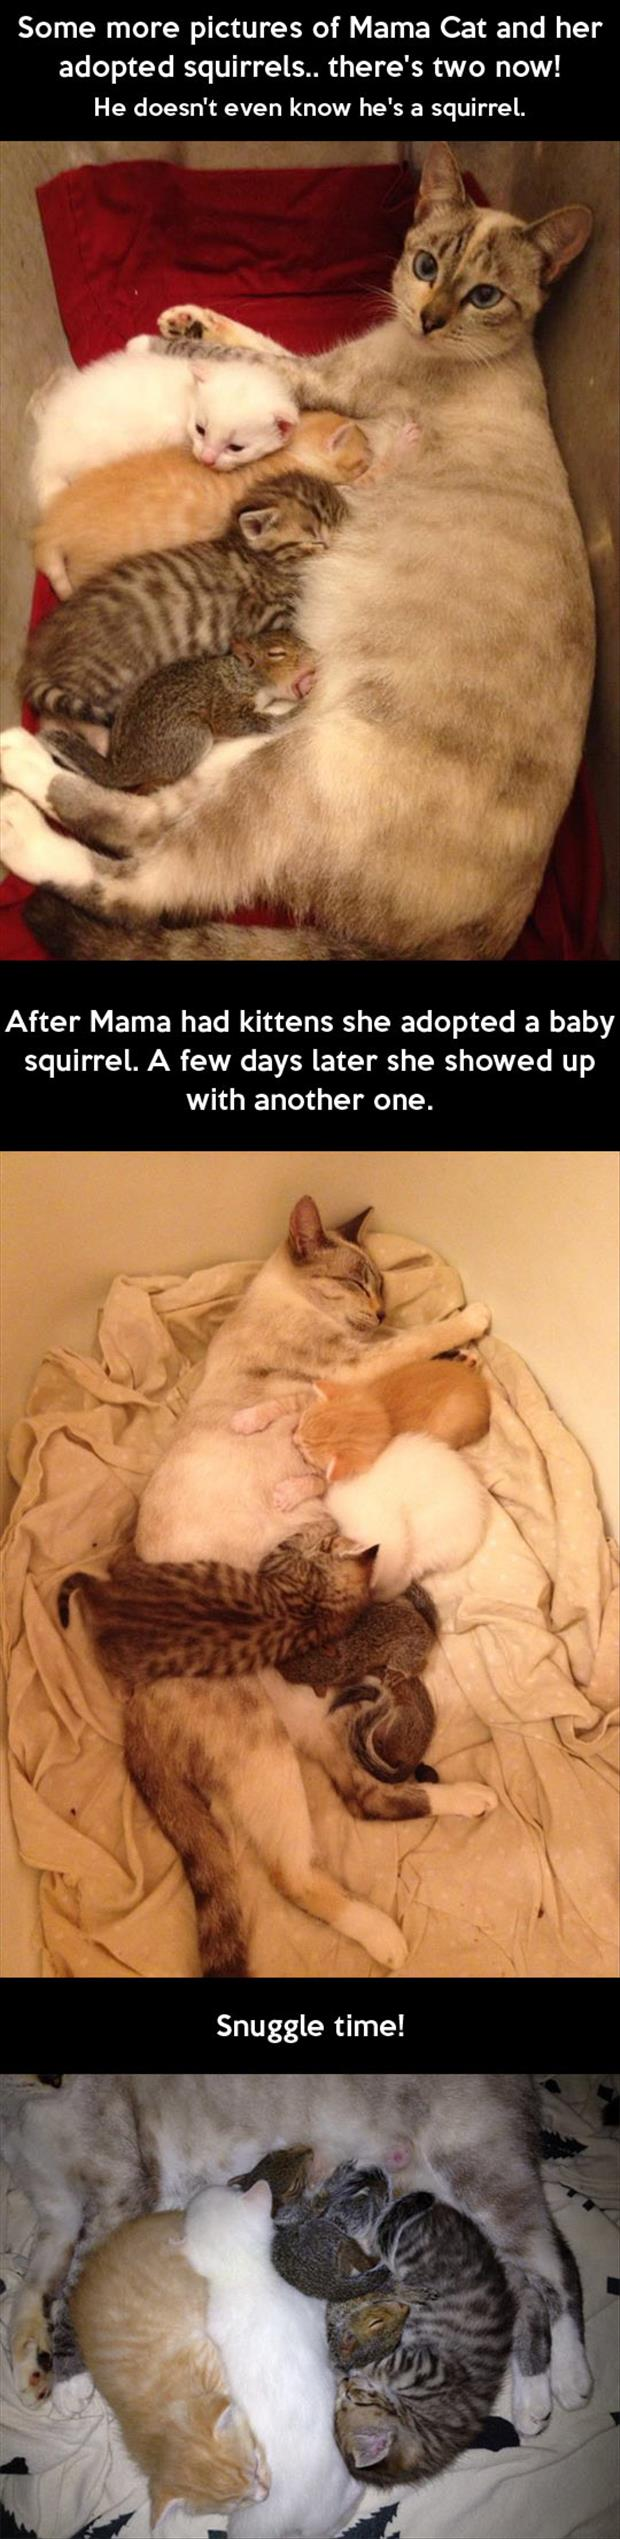 mama cat adopts a baby squirrel